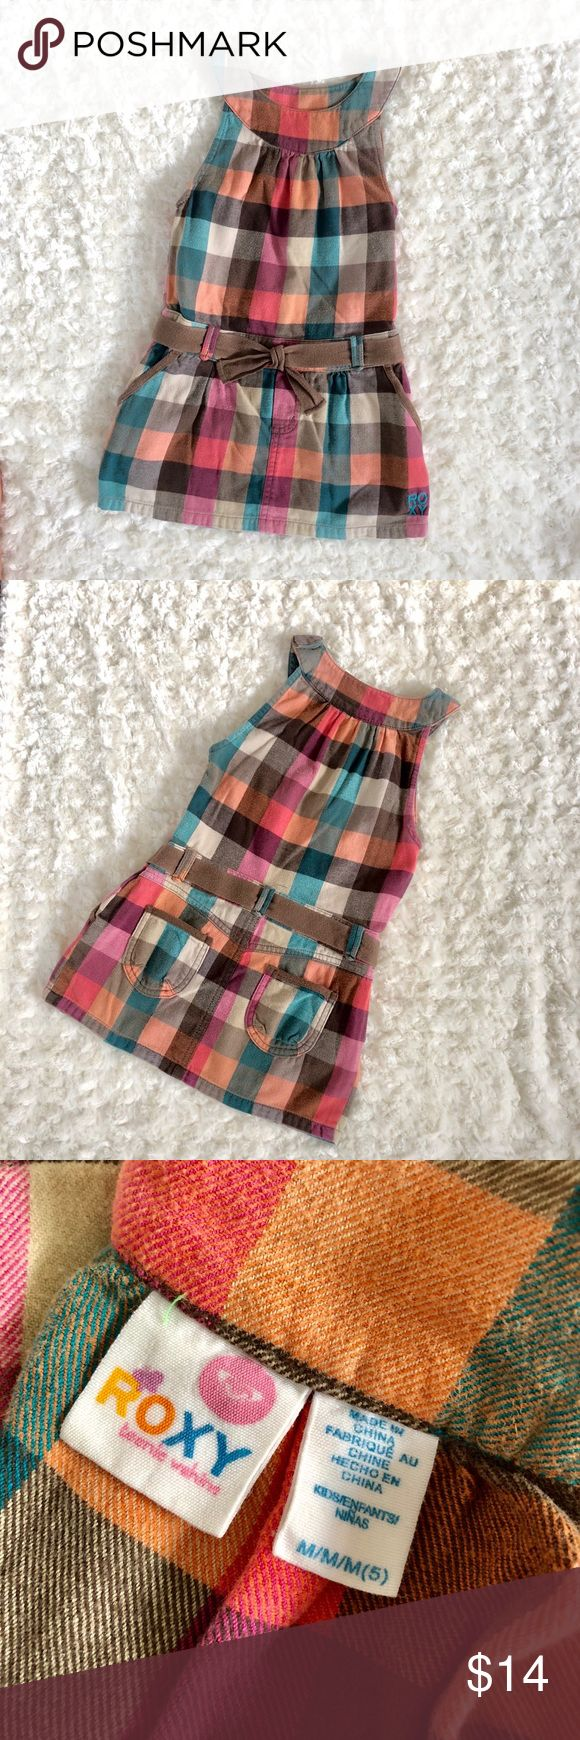 Cute versatile stylish dress Super cute dress. Multi color checkered dress. Lots of details; pockets in the back., zipper on the side for easy wear. Roxy Dresses Casual